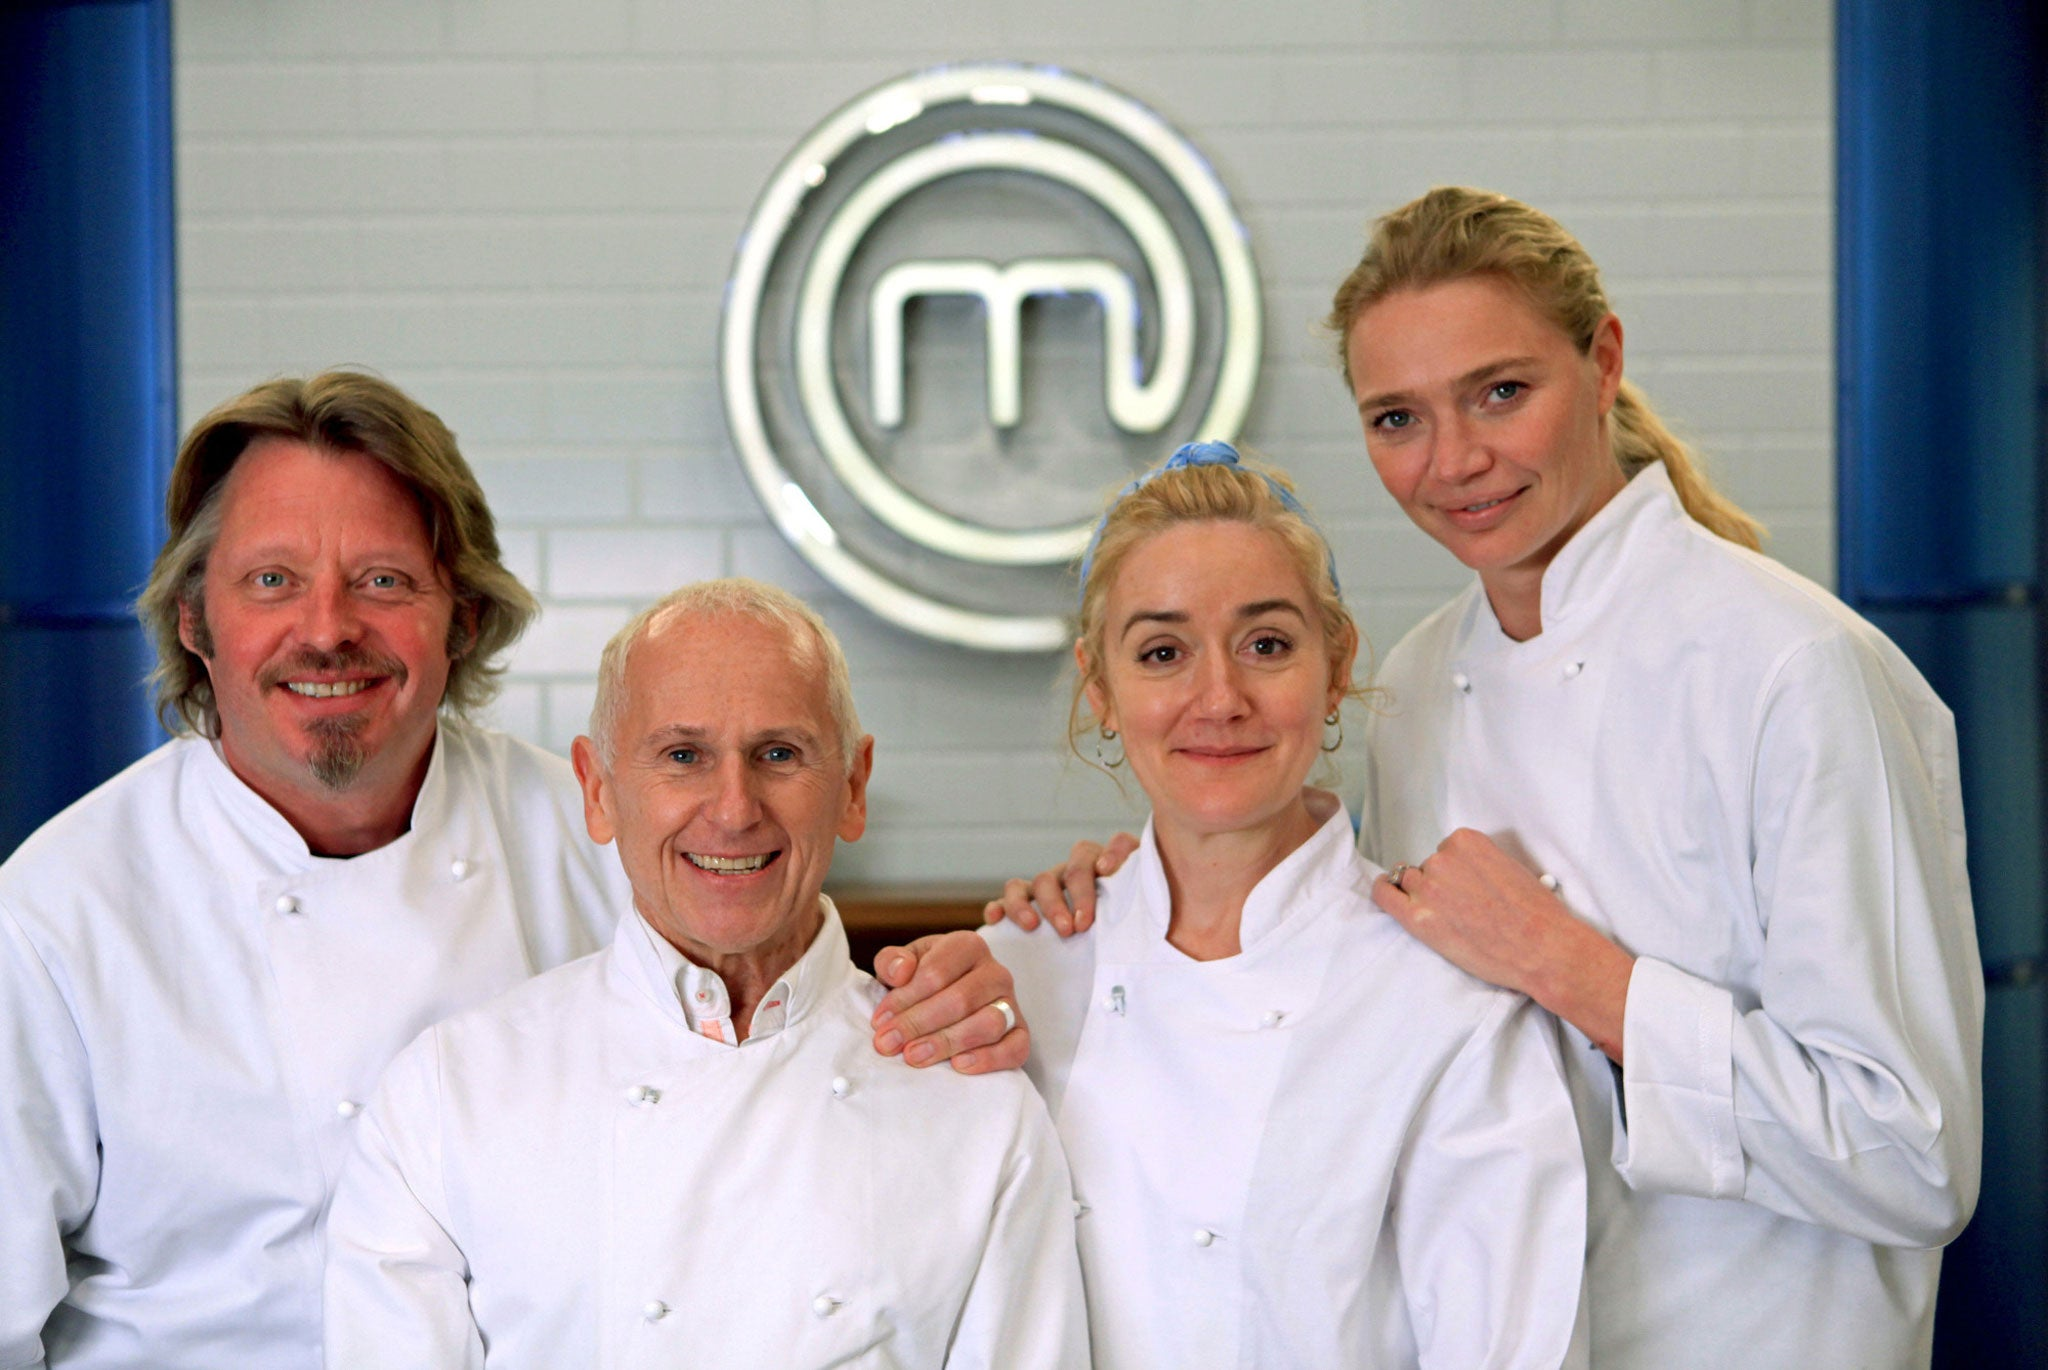 Masterchef, The Professionals - Season 10 - Episode 1 ...